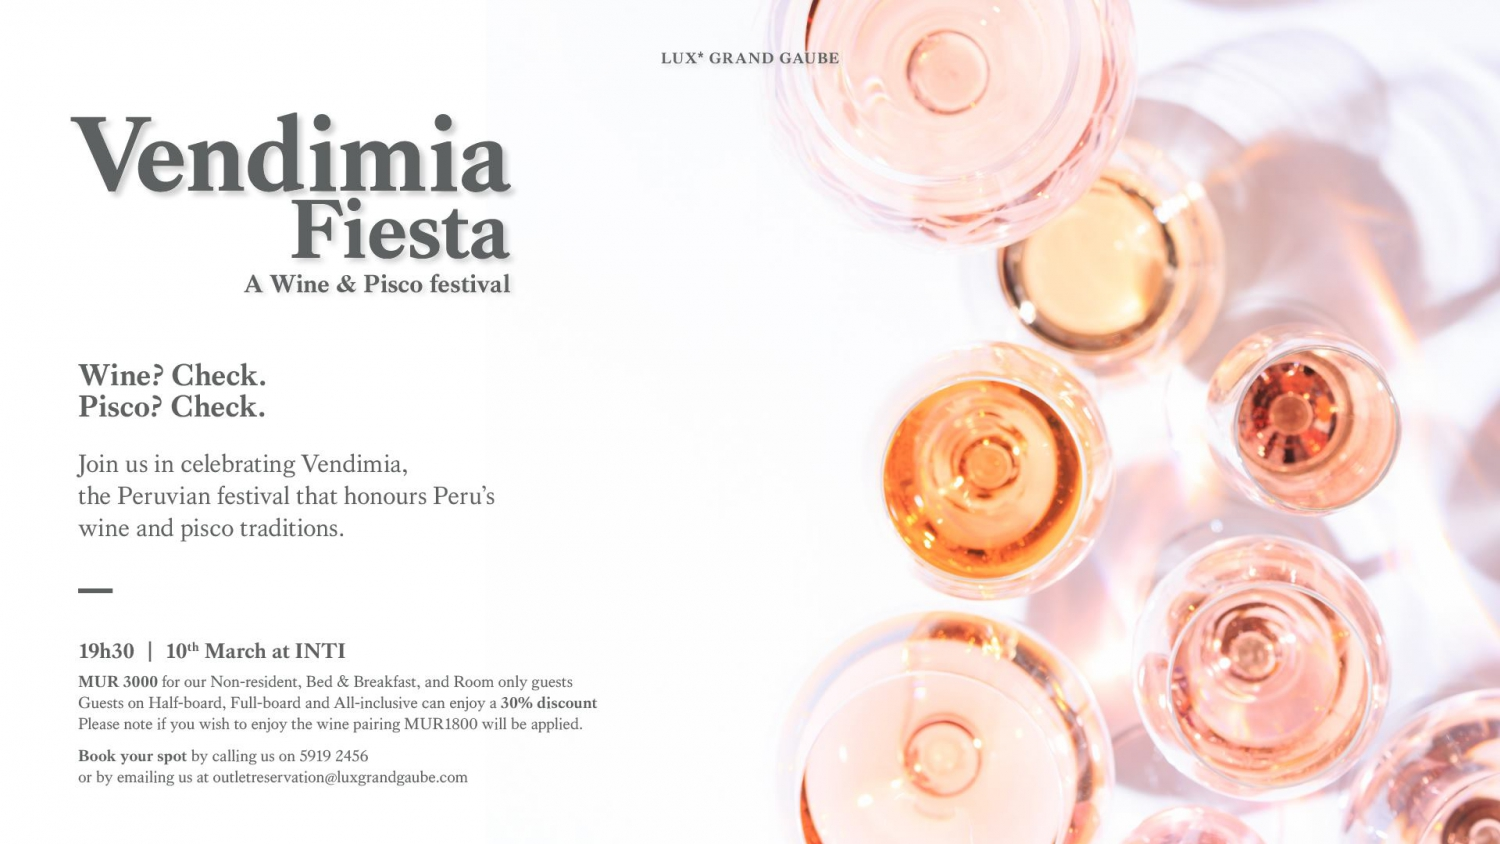 Vendemia Fiesta: A Wine & Pisco Festival at Lux Grand Gaube